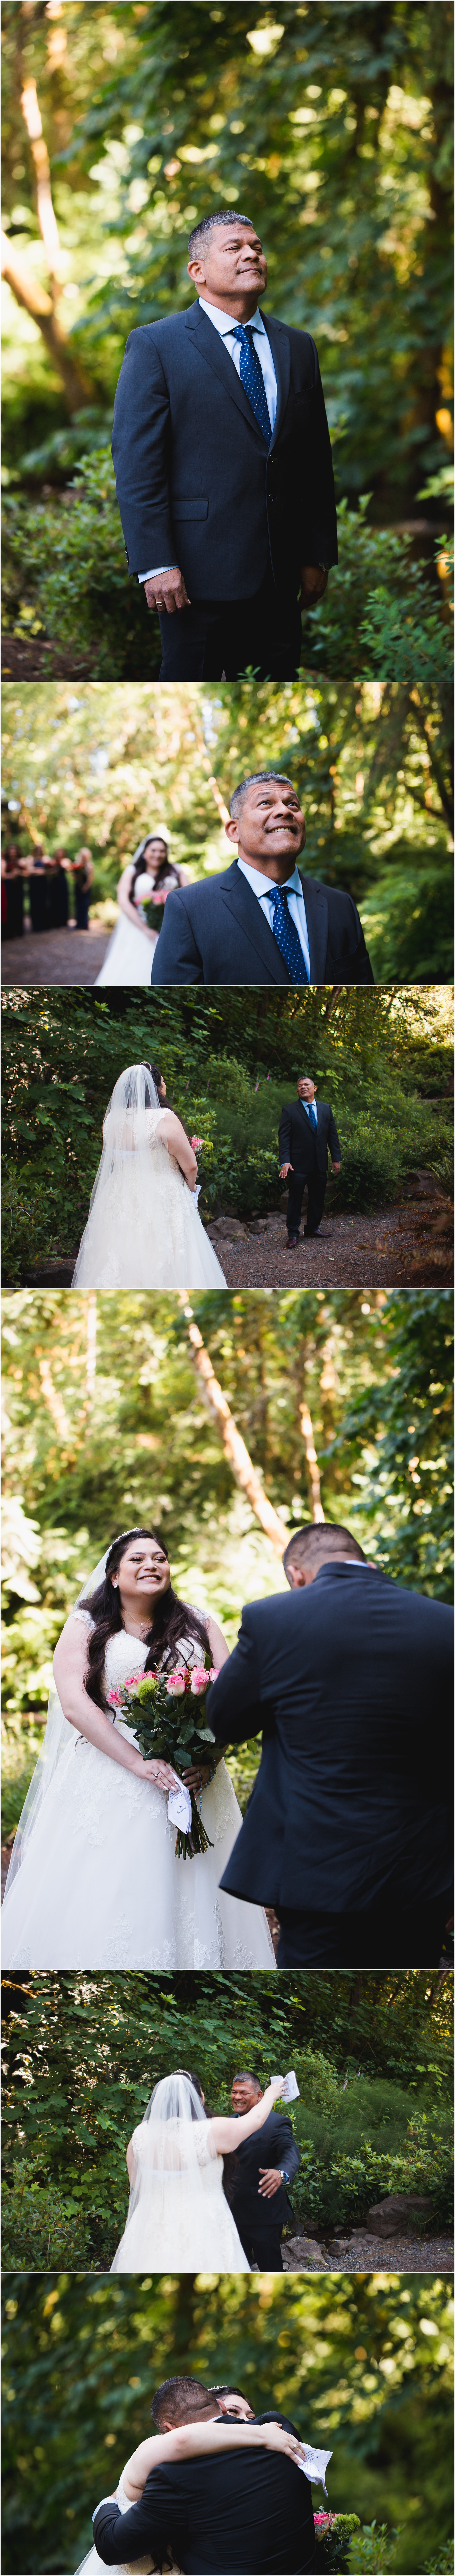 bride-and-father-first-look.jpg